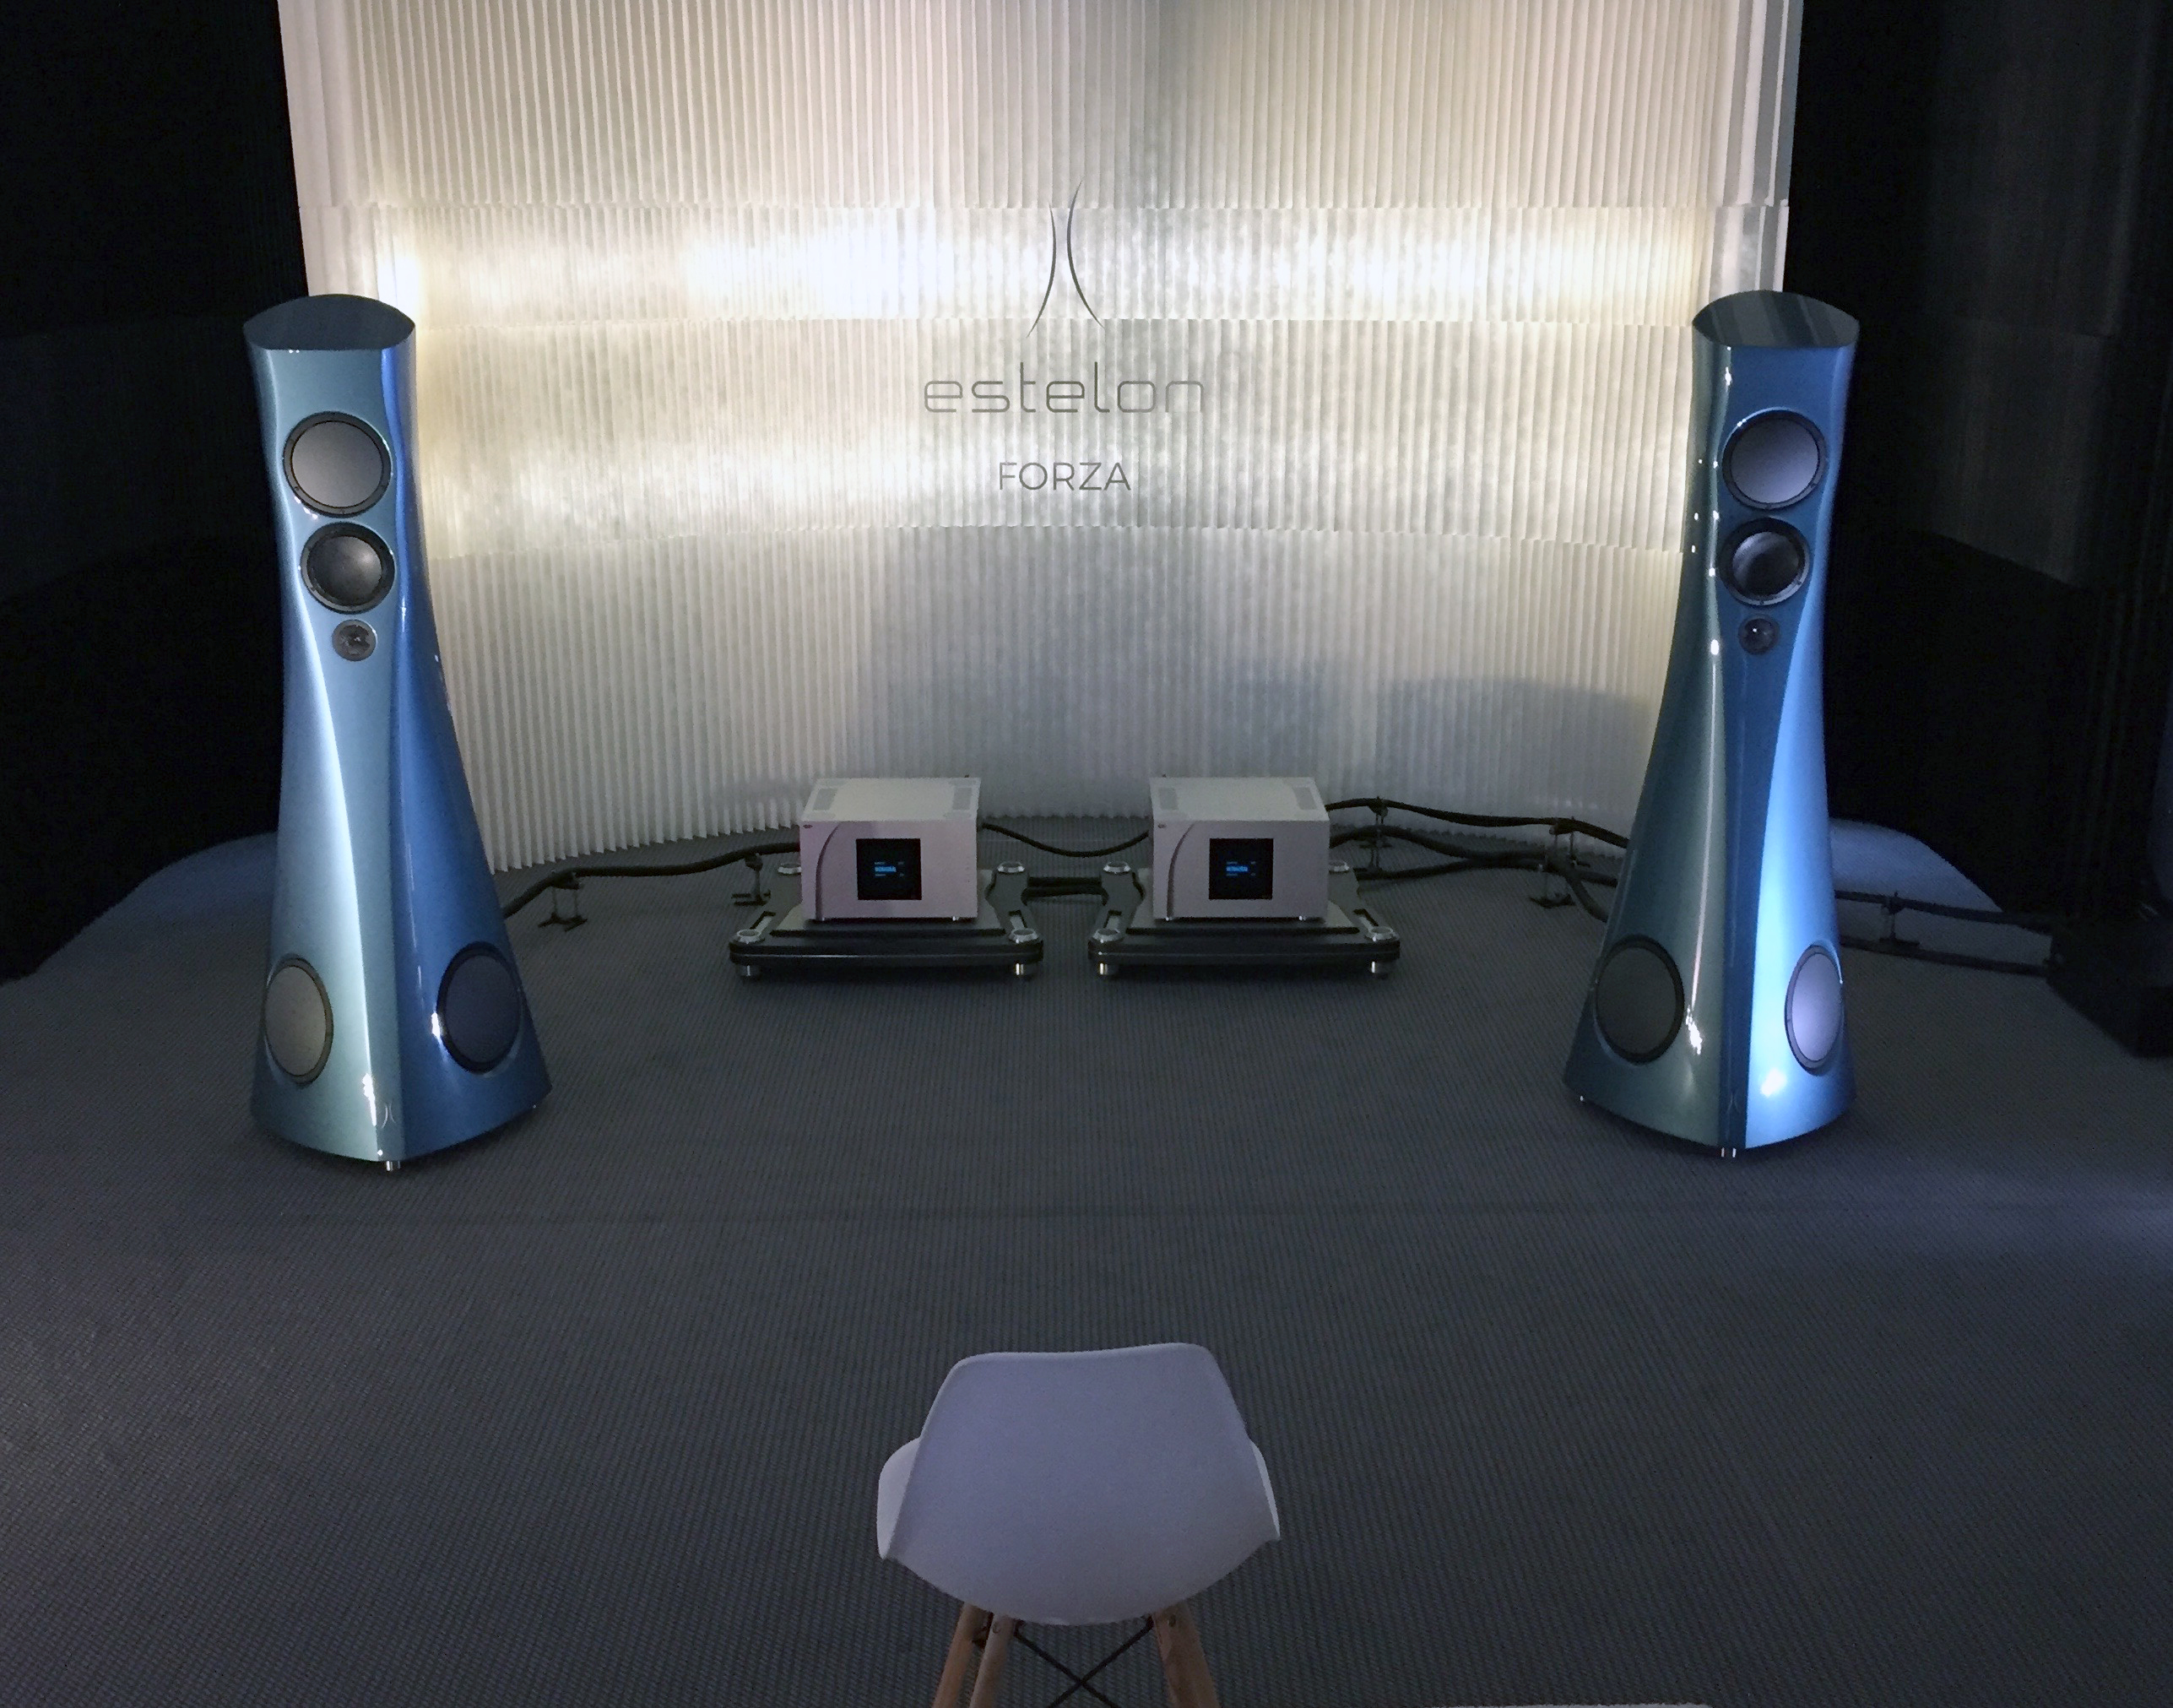 Forza loudspeakers, Estelon room, Munich High End 2019